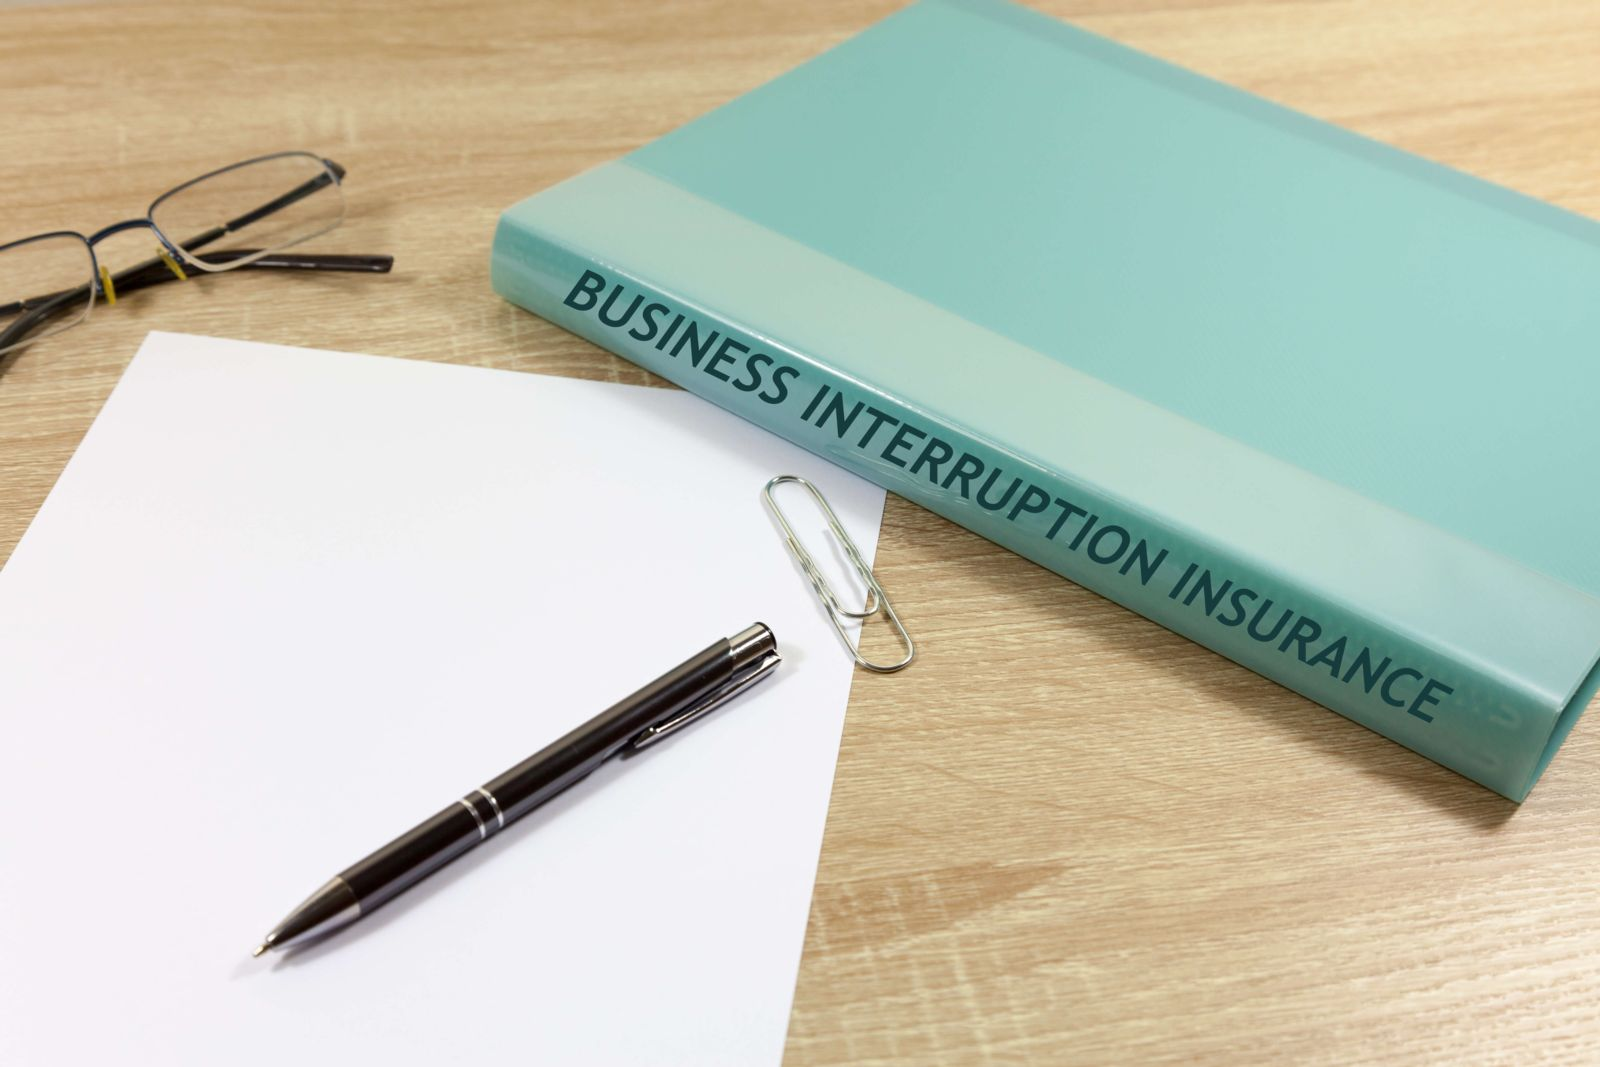 What Is Business Interruption Insurance?